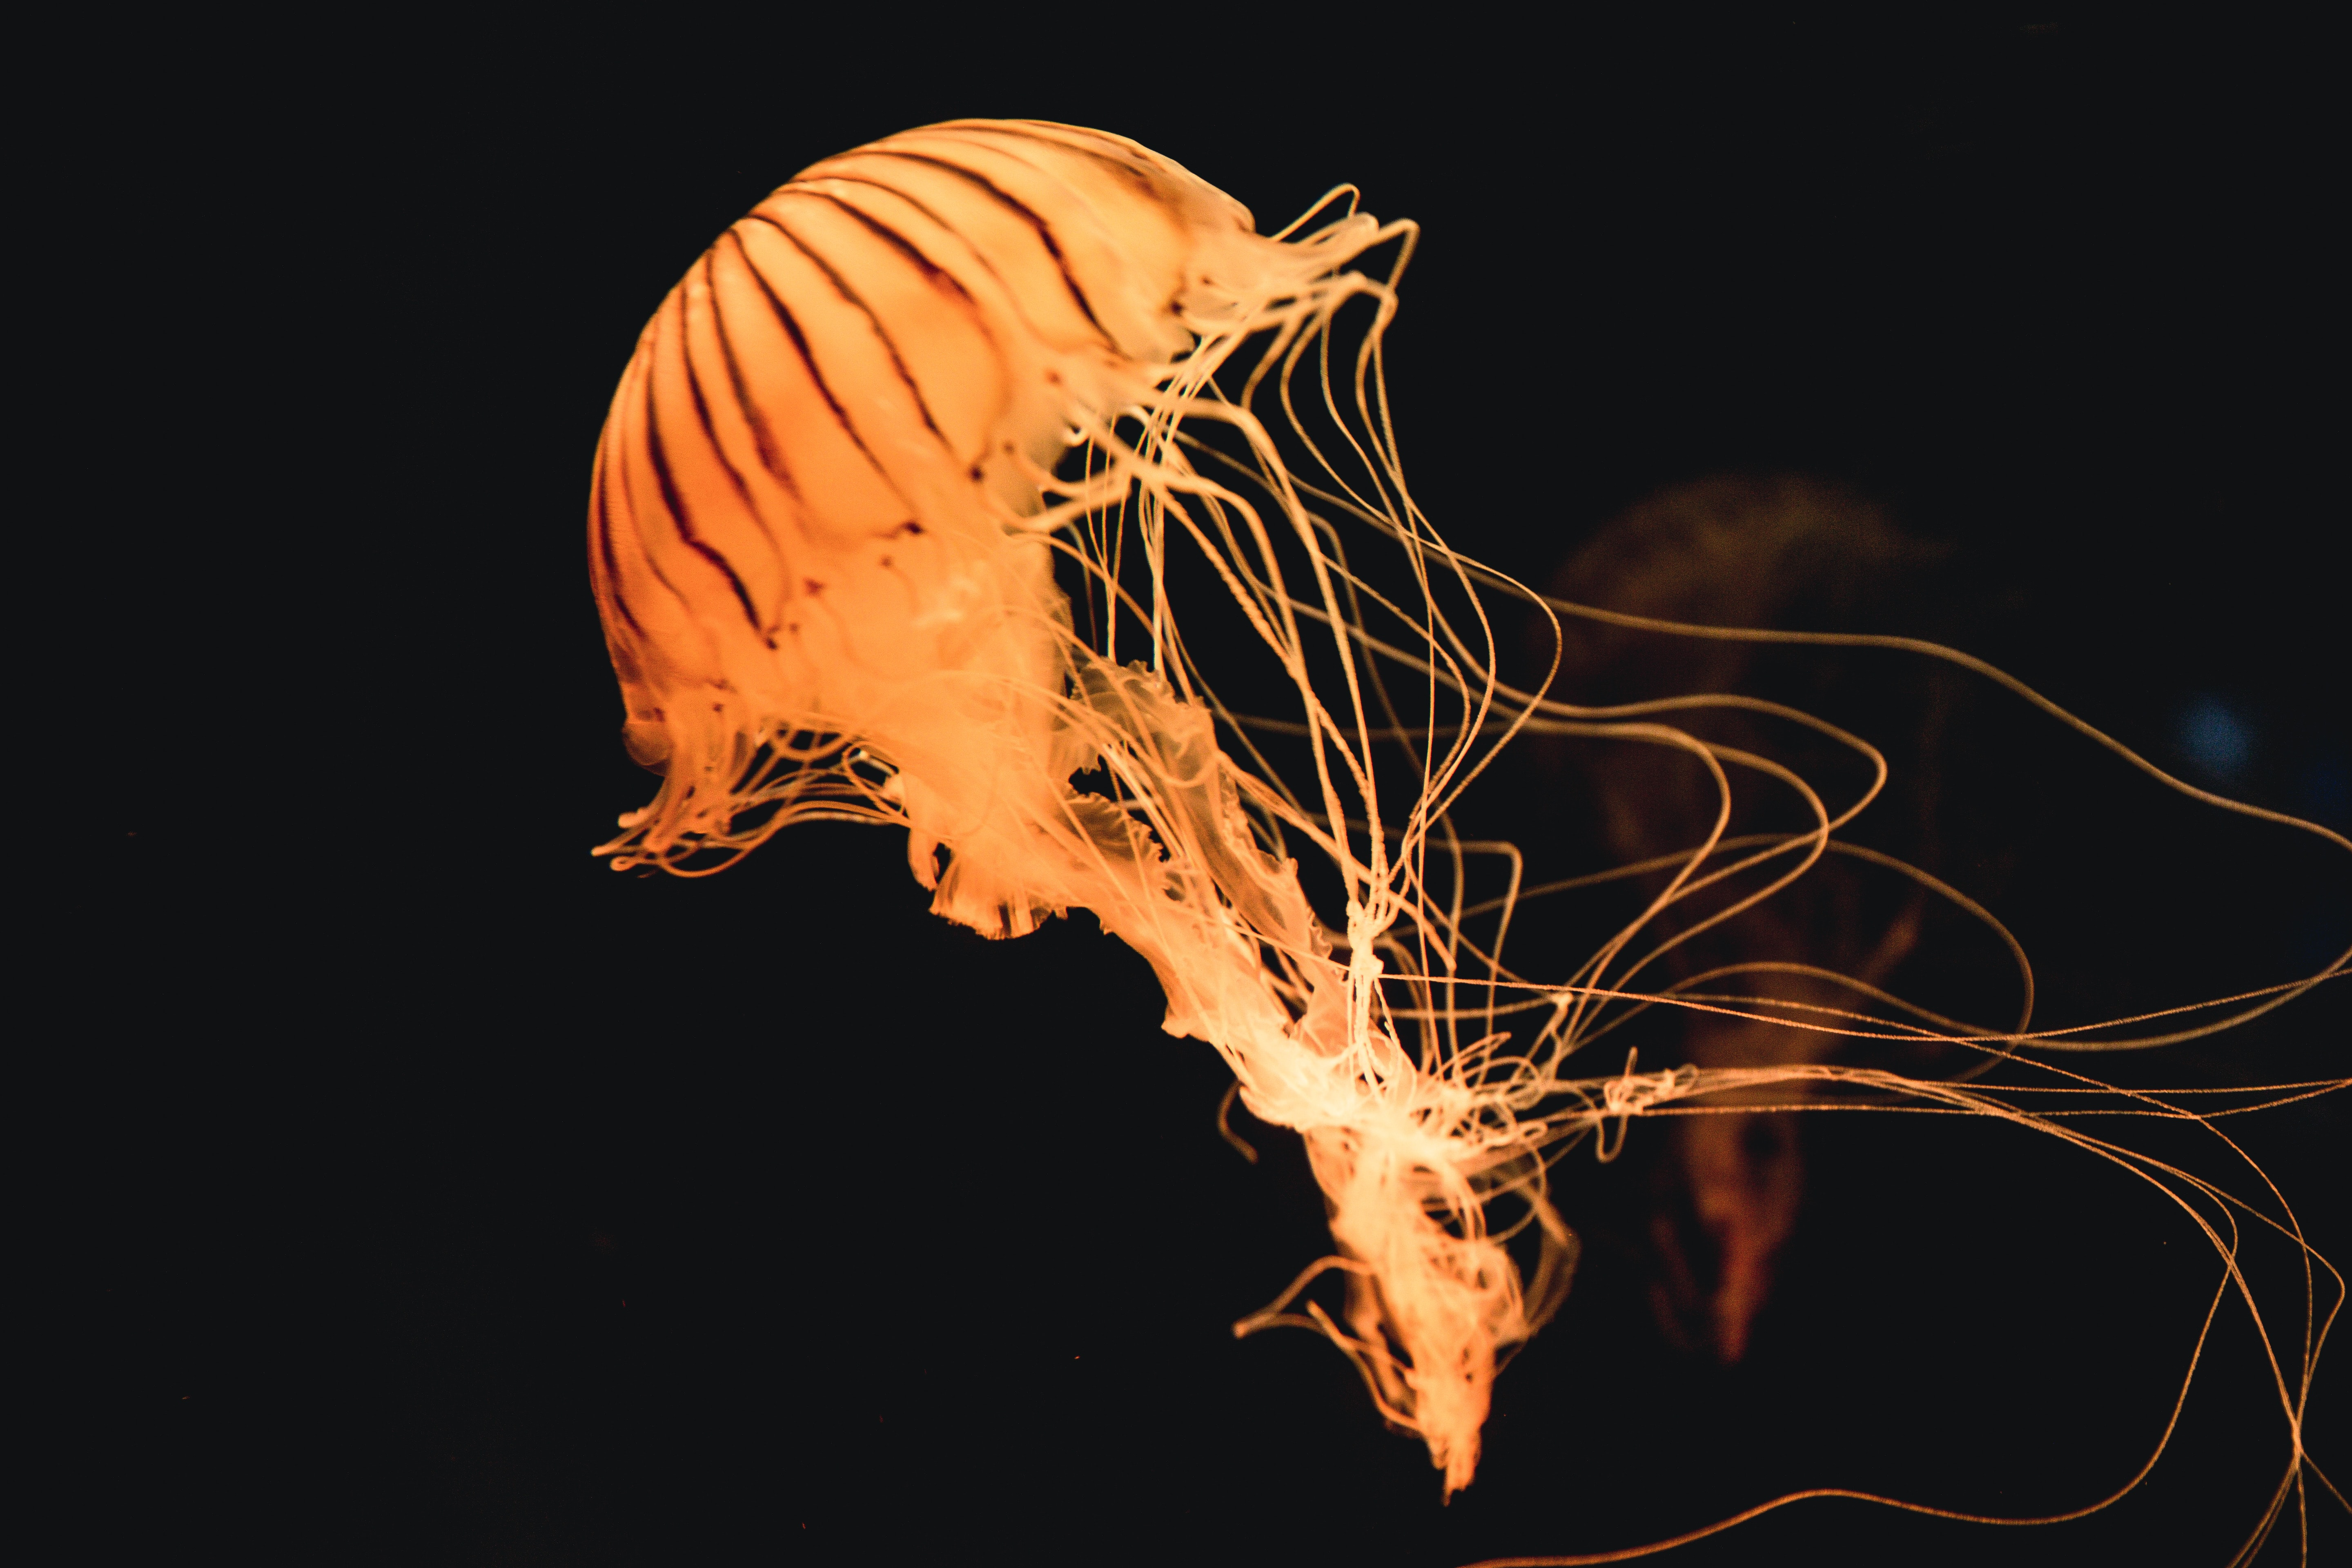 yellow jelly fish under water